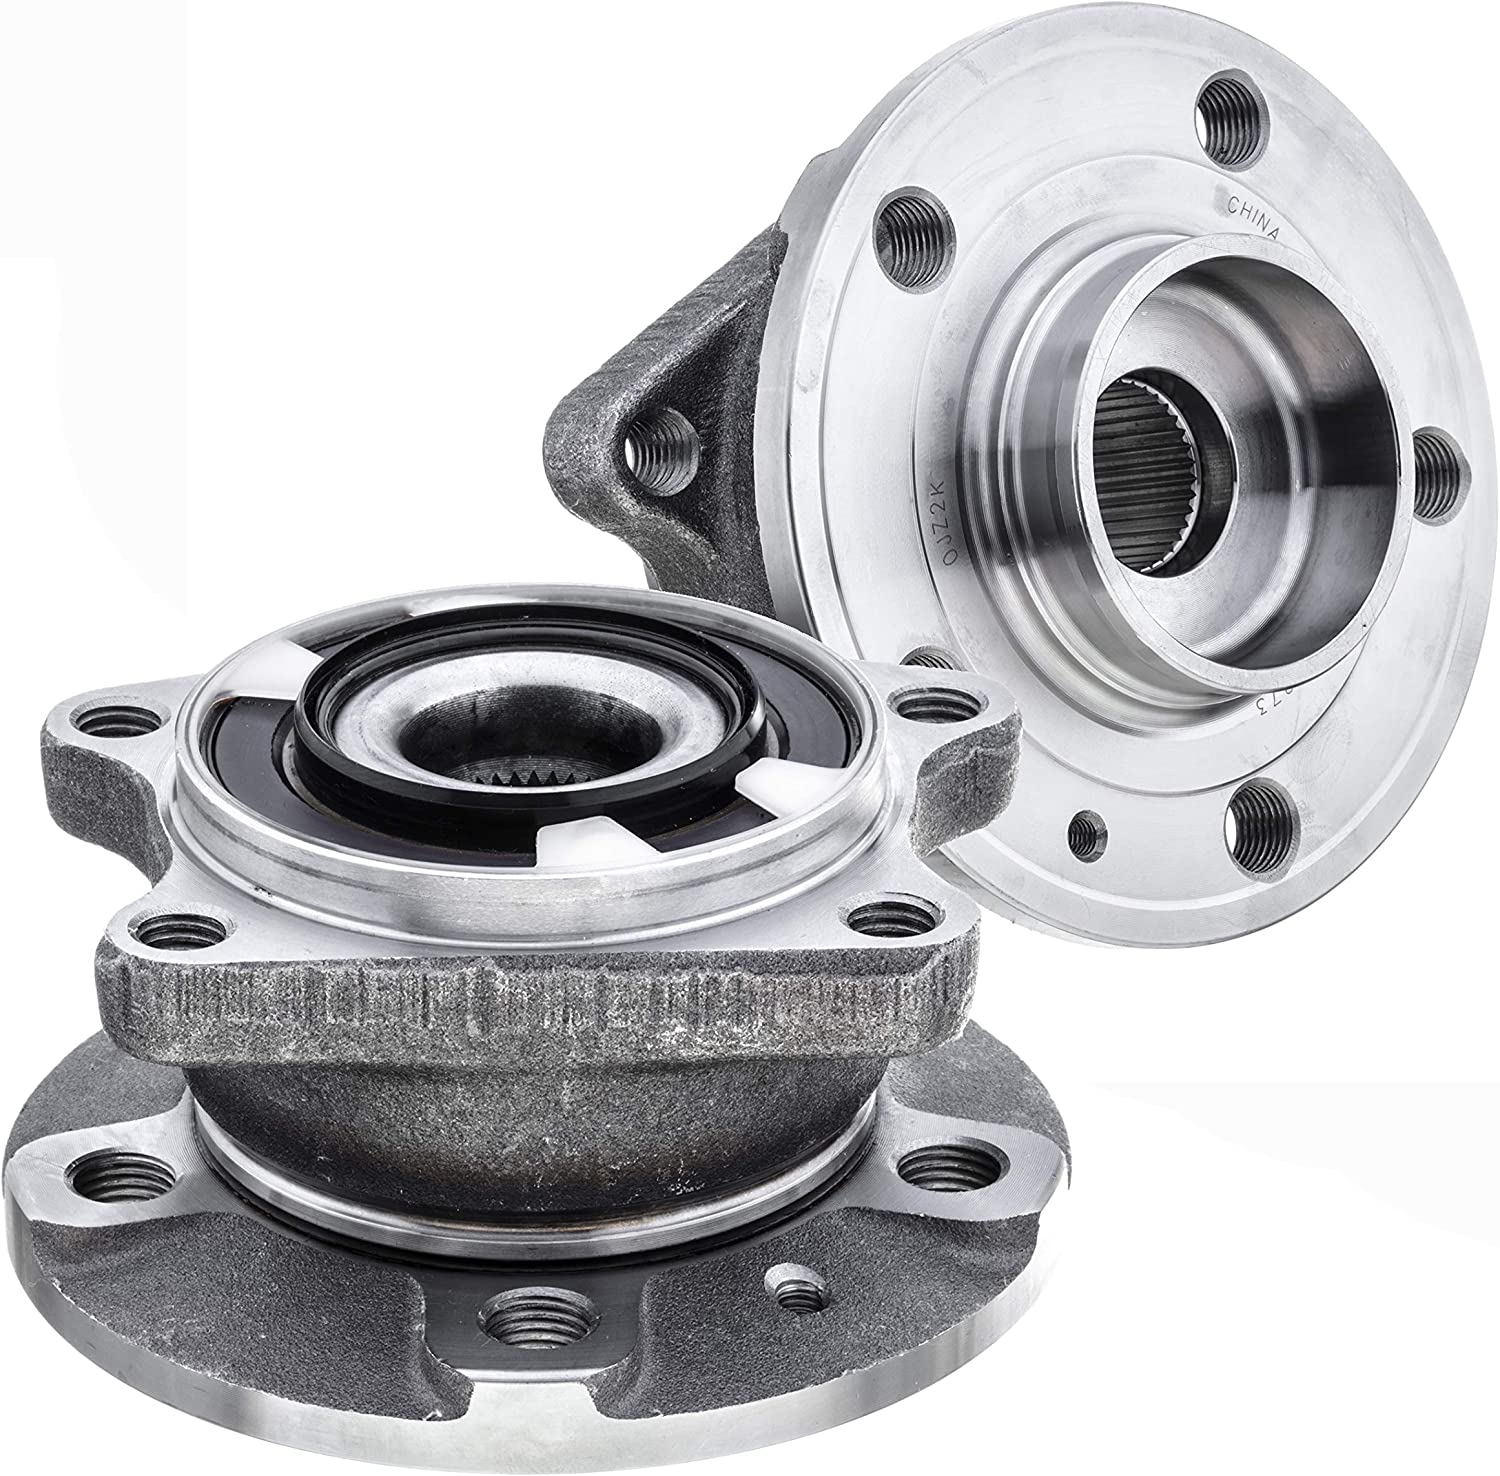 2021 QJZ 2-Pack 512273 - Rear Driver Wheel Side B Passenger Low price and Hub